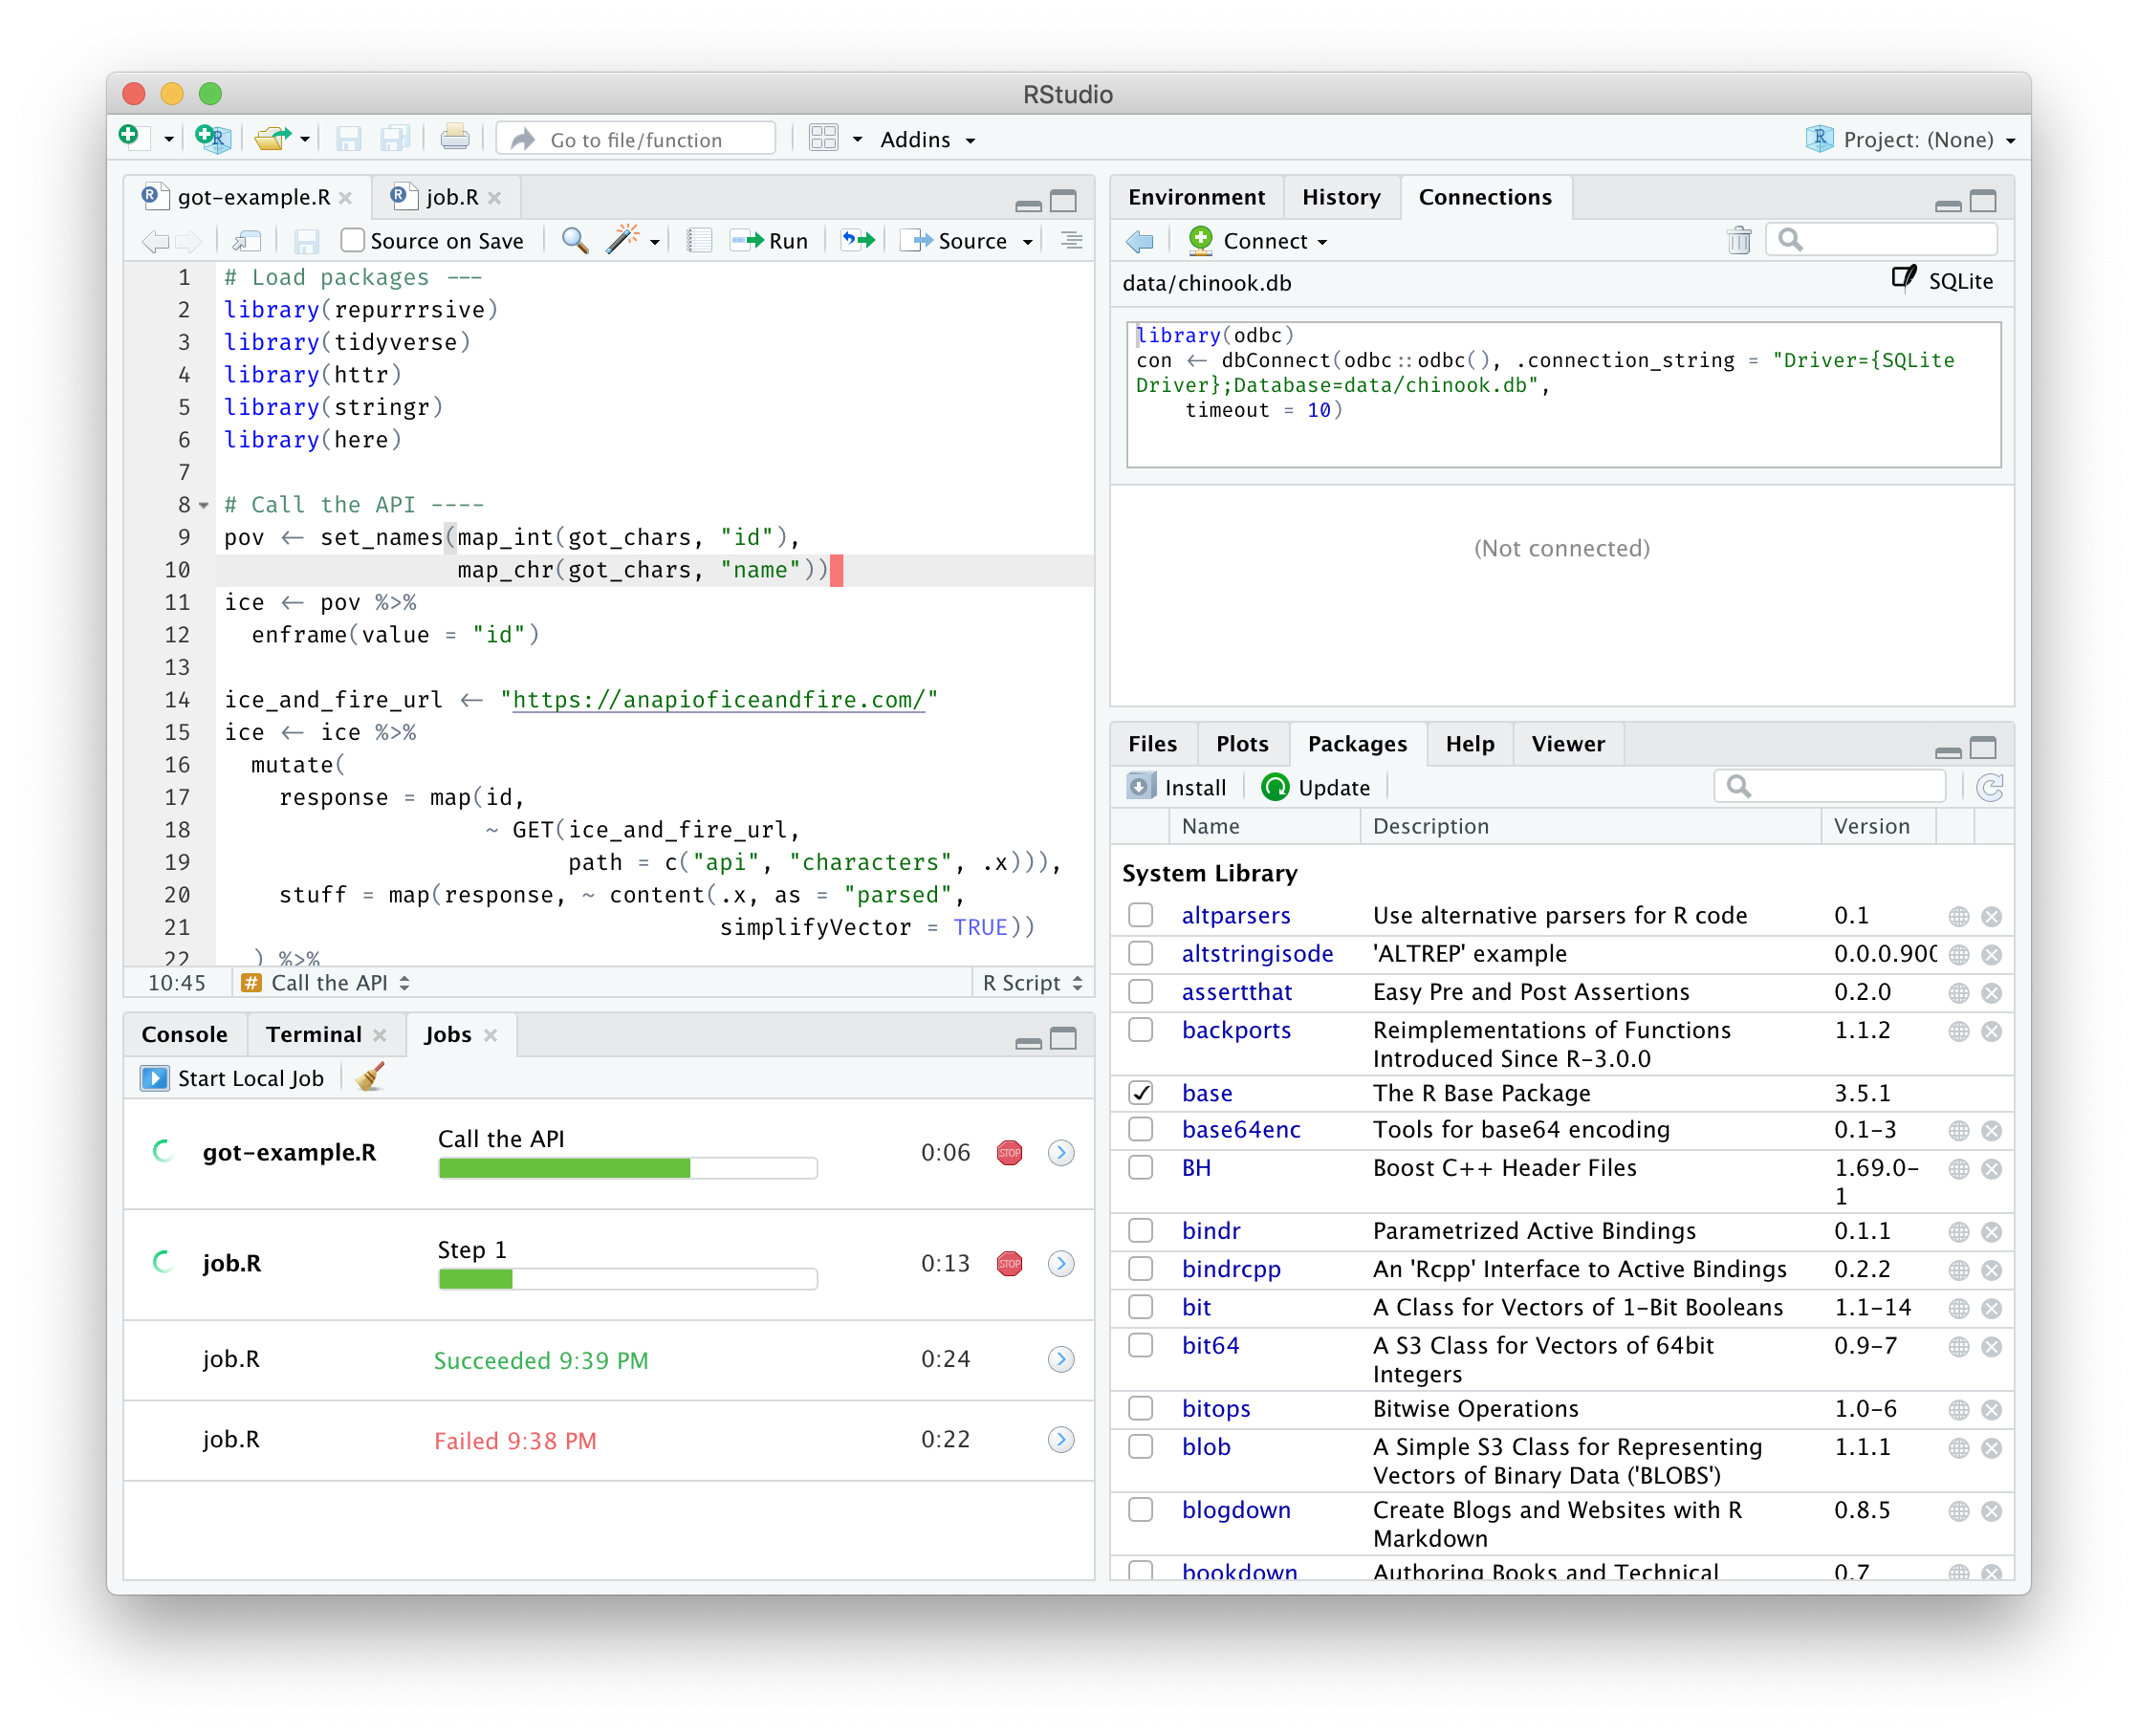 Screenshot of running jobs in RStudio